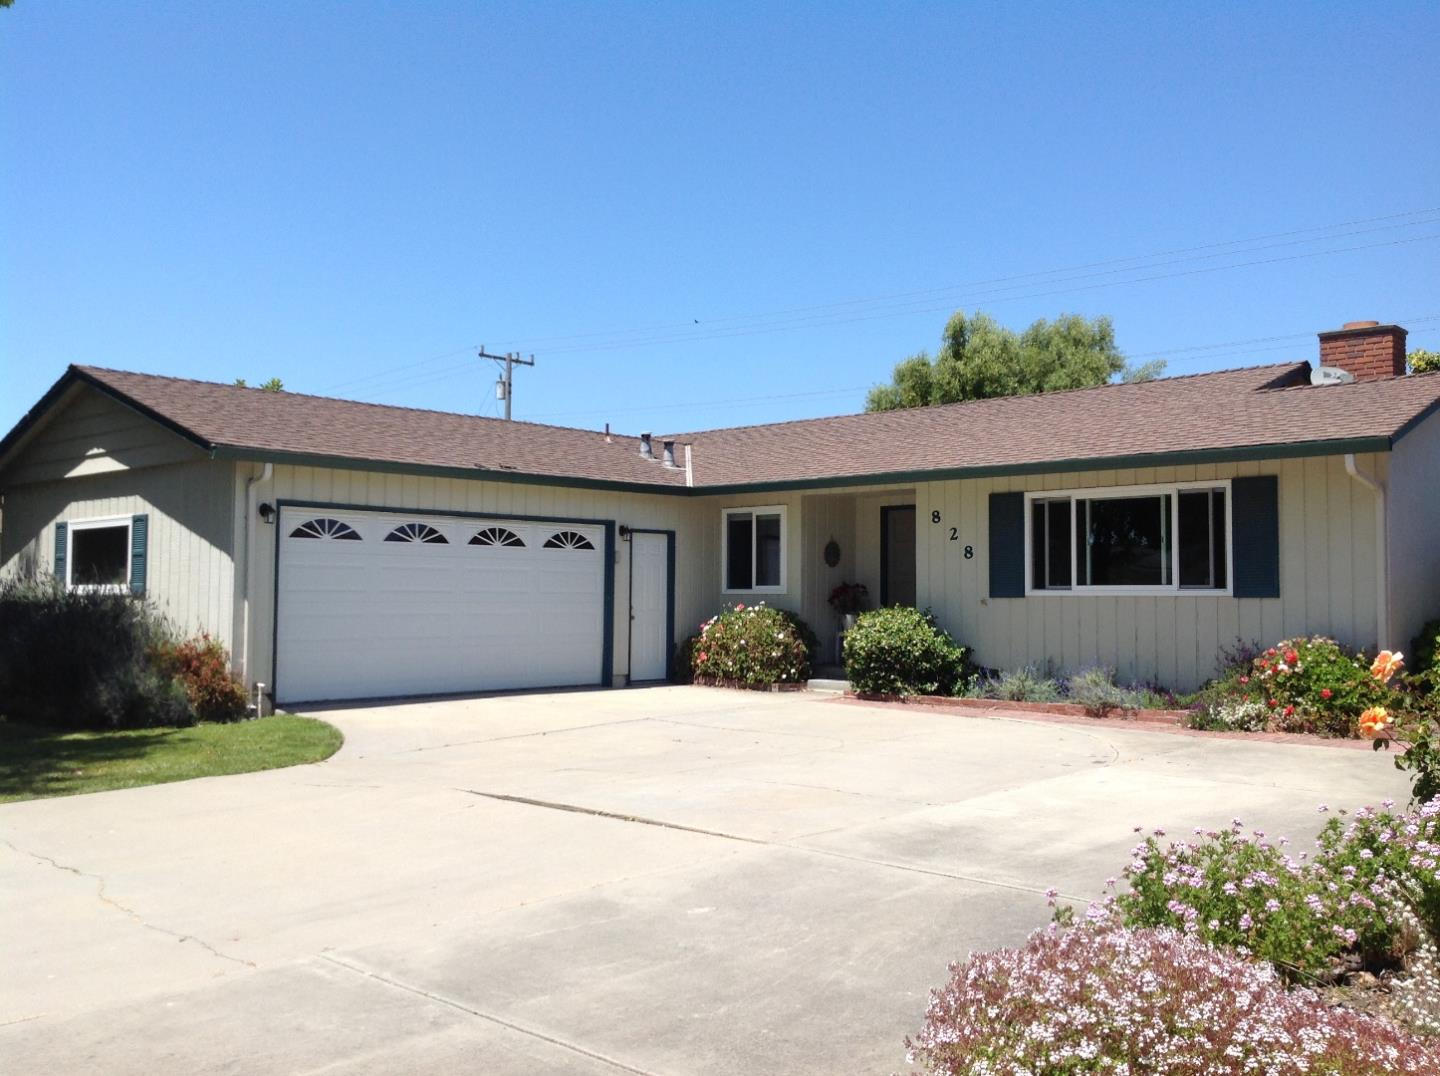 Additional photo for property listing at 828 Fairfax Drive  Salinas, カリフォルニア 93901 アメリカ合衆国